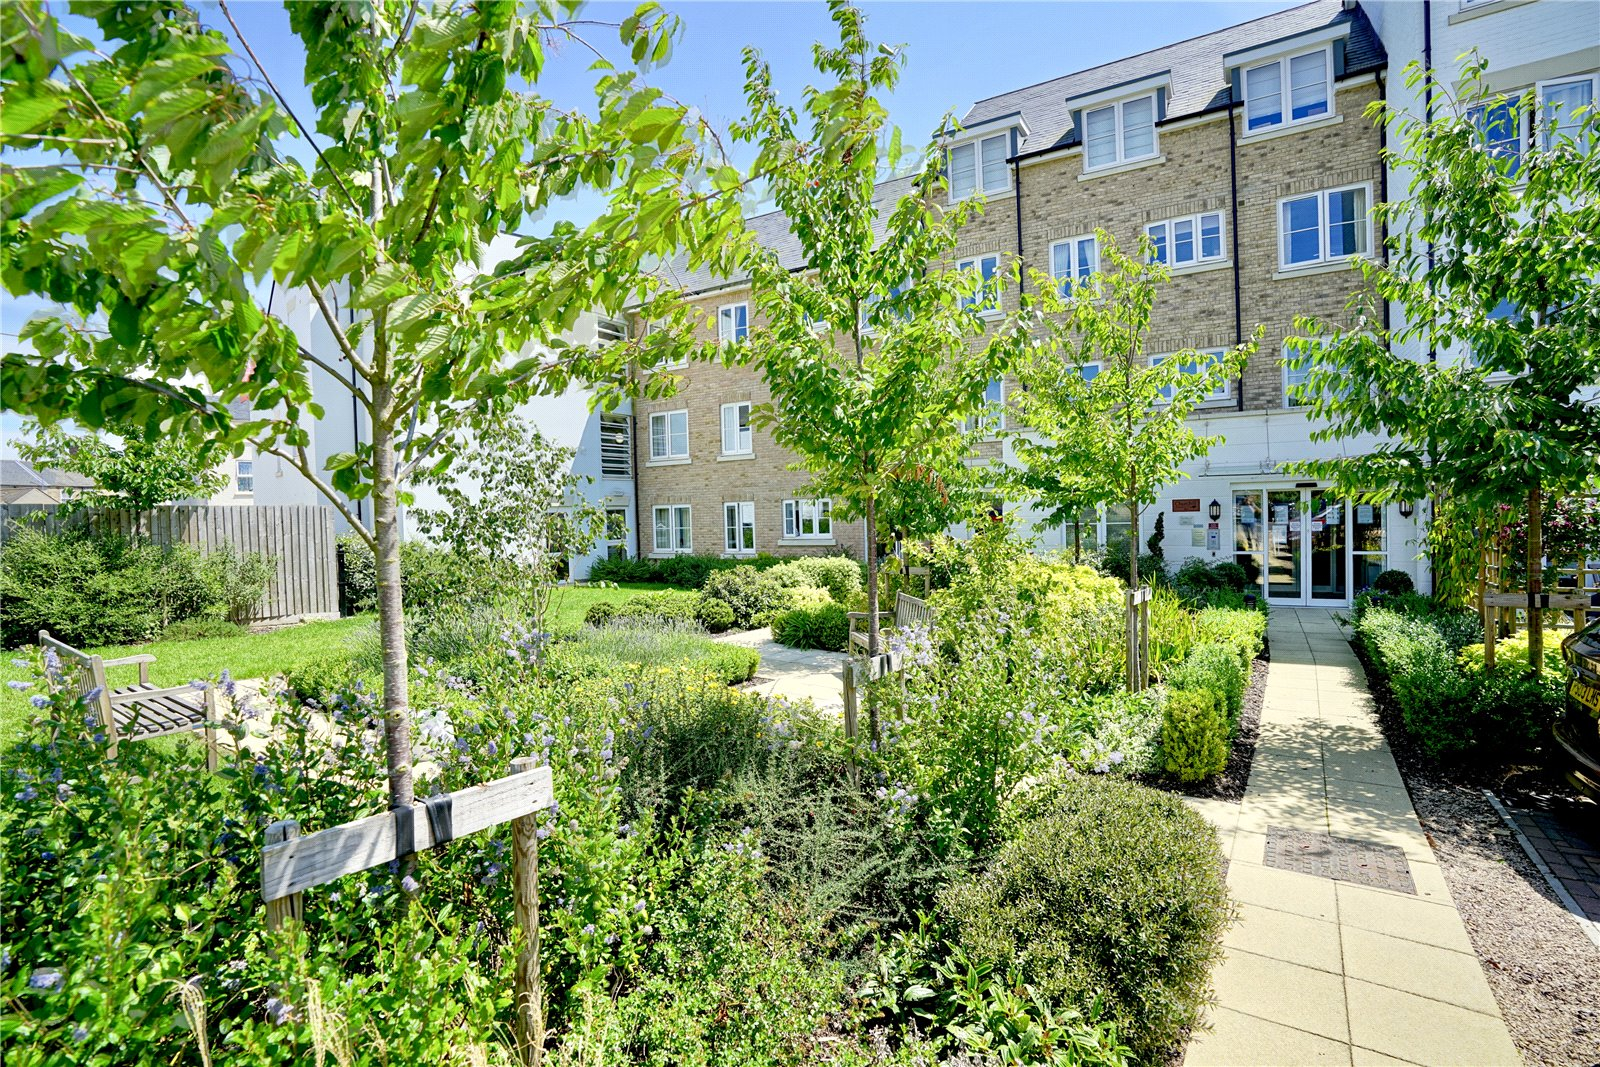 2 bed apartment for sale in Edison Bell Way, PE29 3FD  - Property Image 1